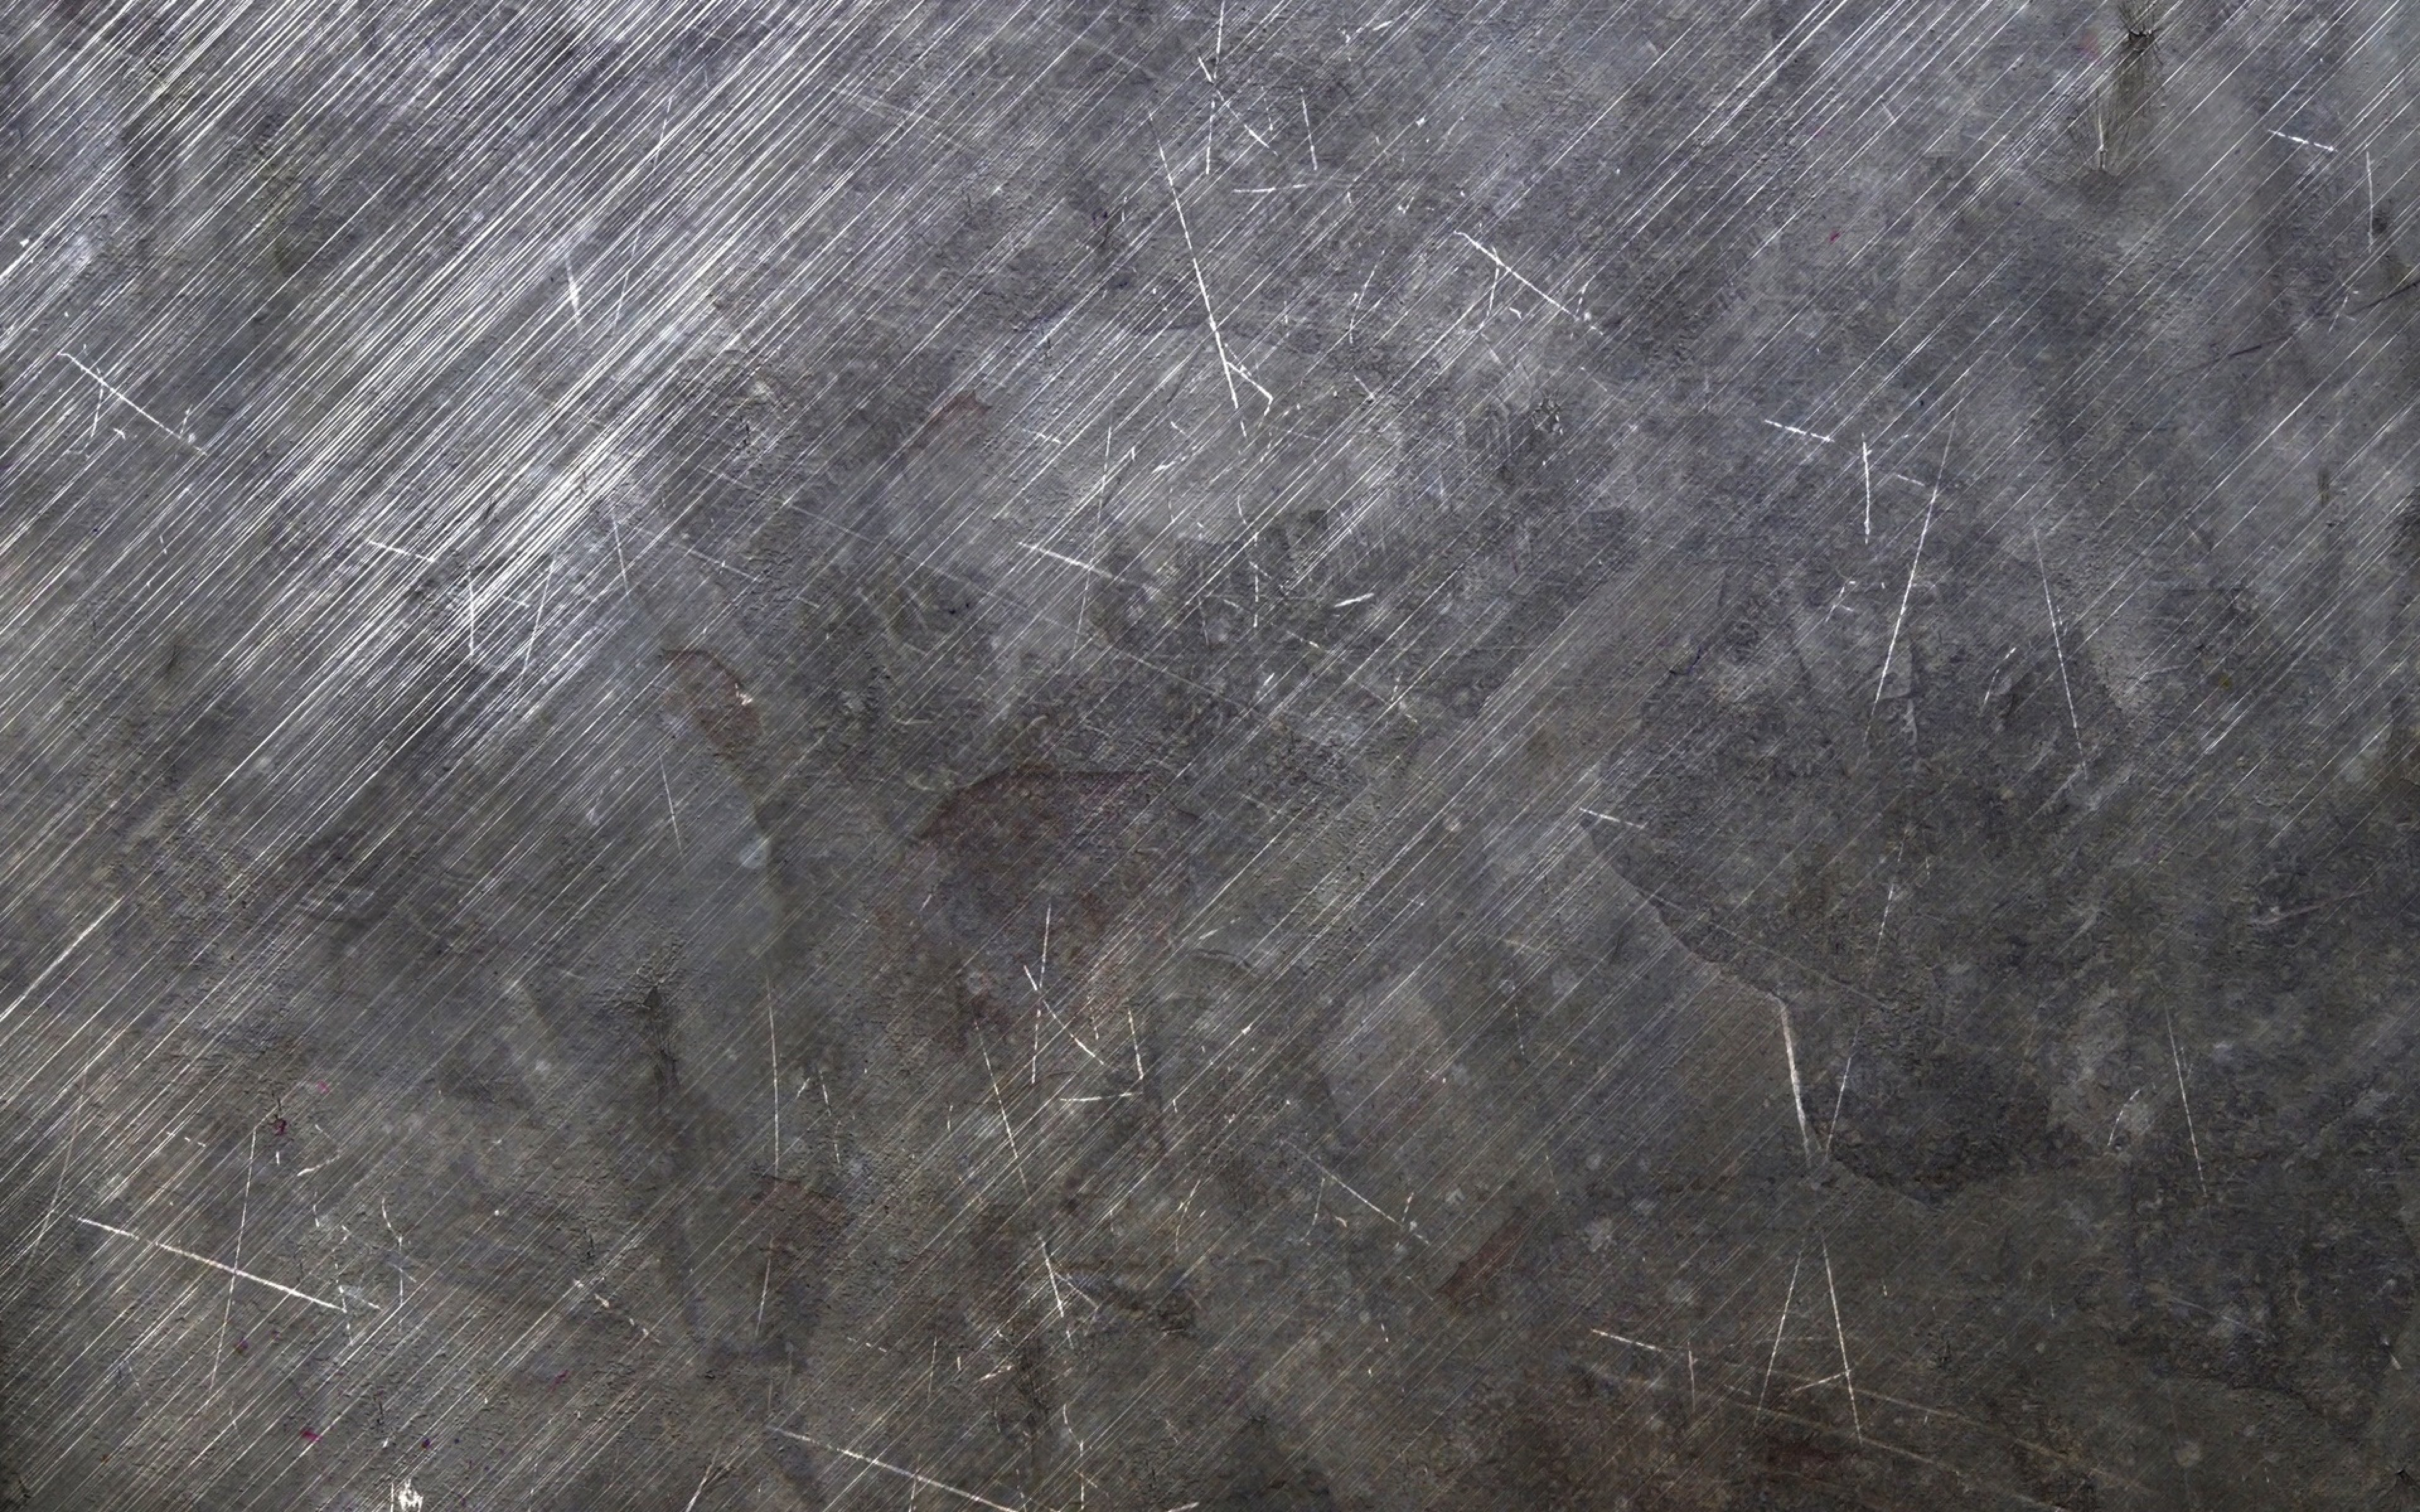 Download HD Scratched Metal Texture Surface Wallpaper WallpapersByte 3840x2400